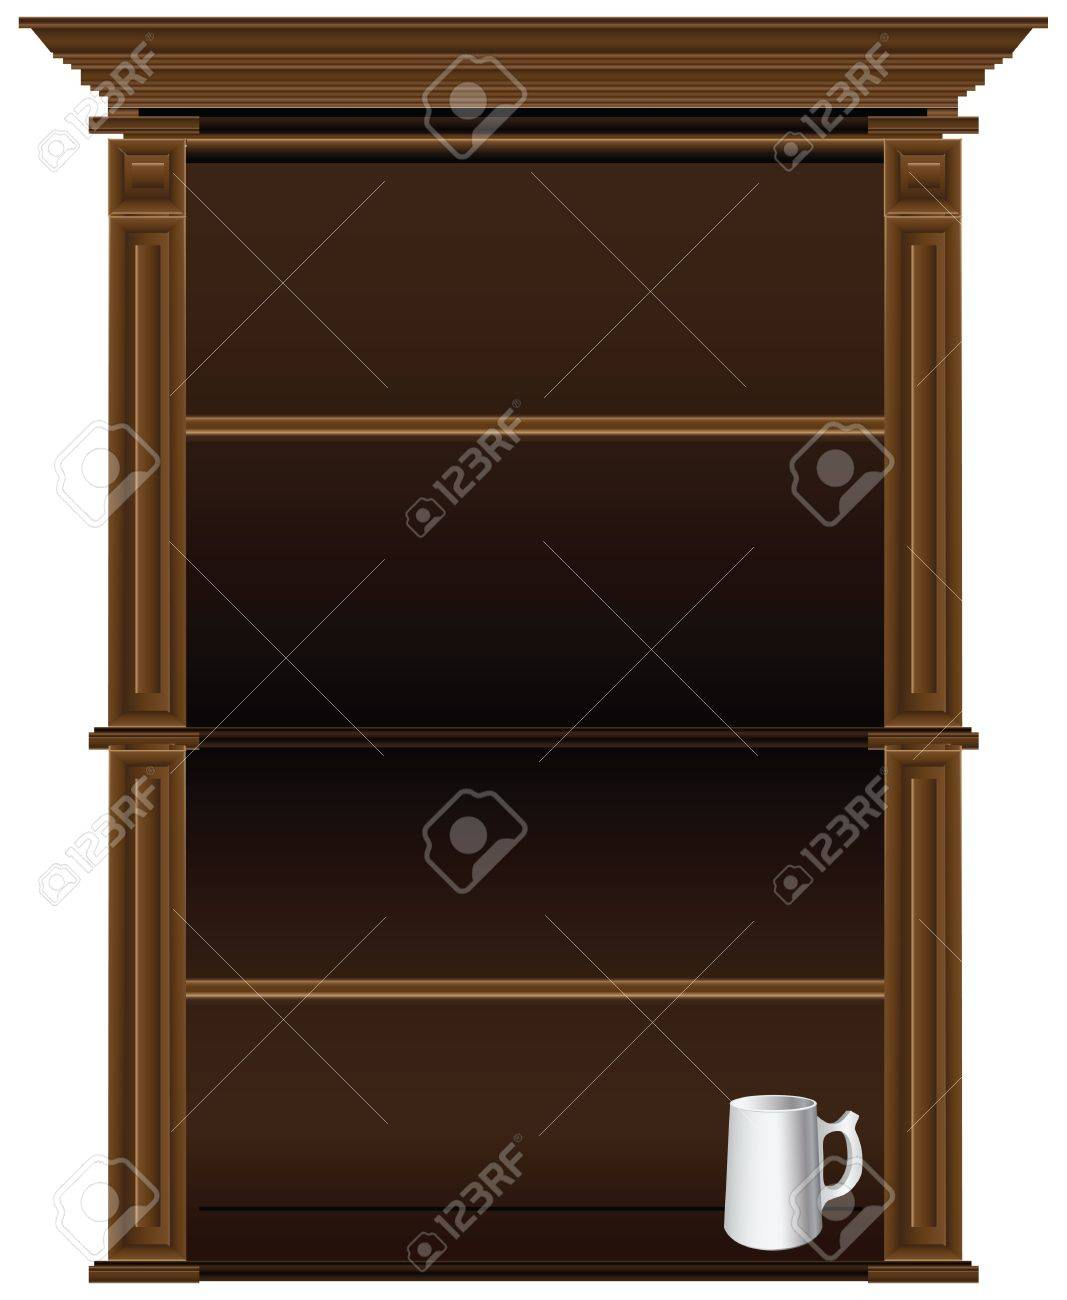 Antique Kitchen Cupboard In The Old Style. Stock Vector   17101915